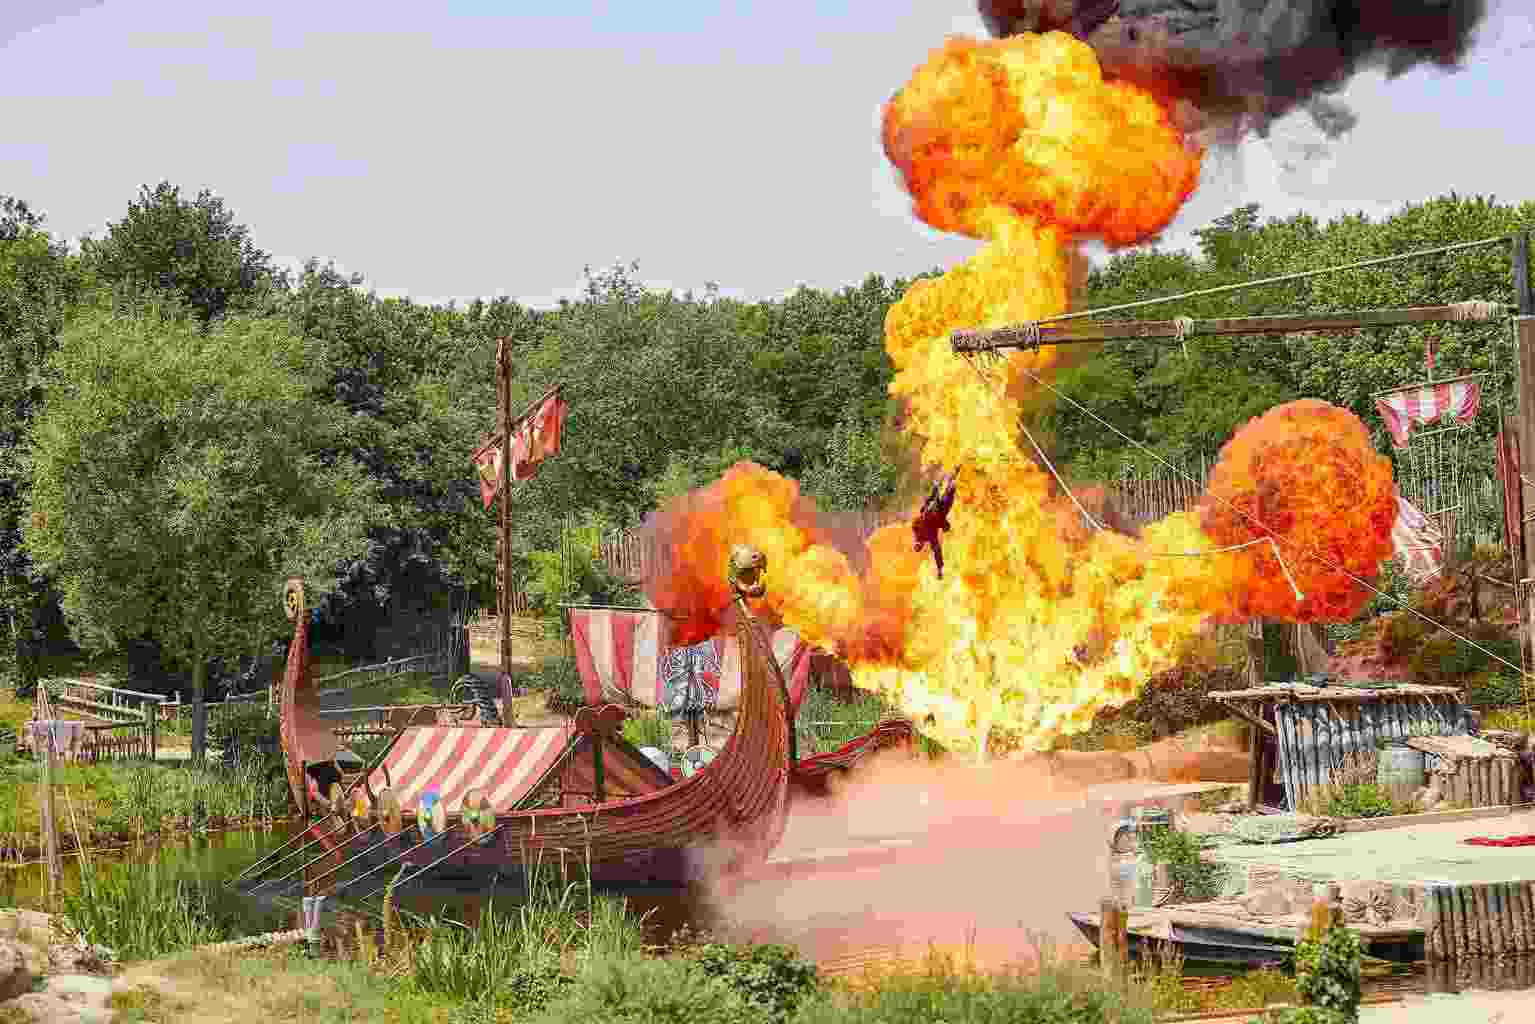 A stunt man leaping out of a Viking ship with a huge explosion behind him.